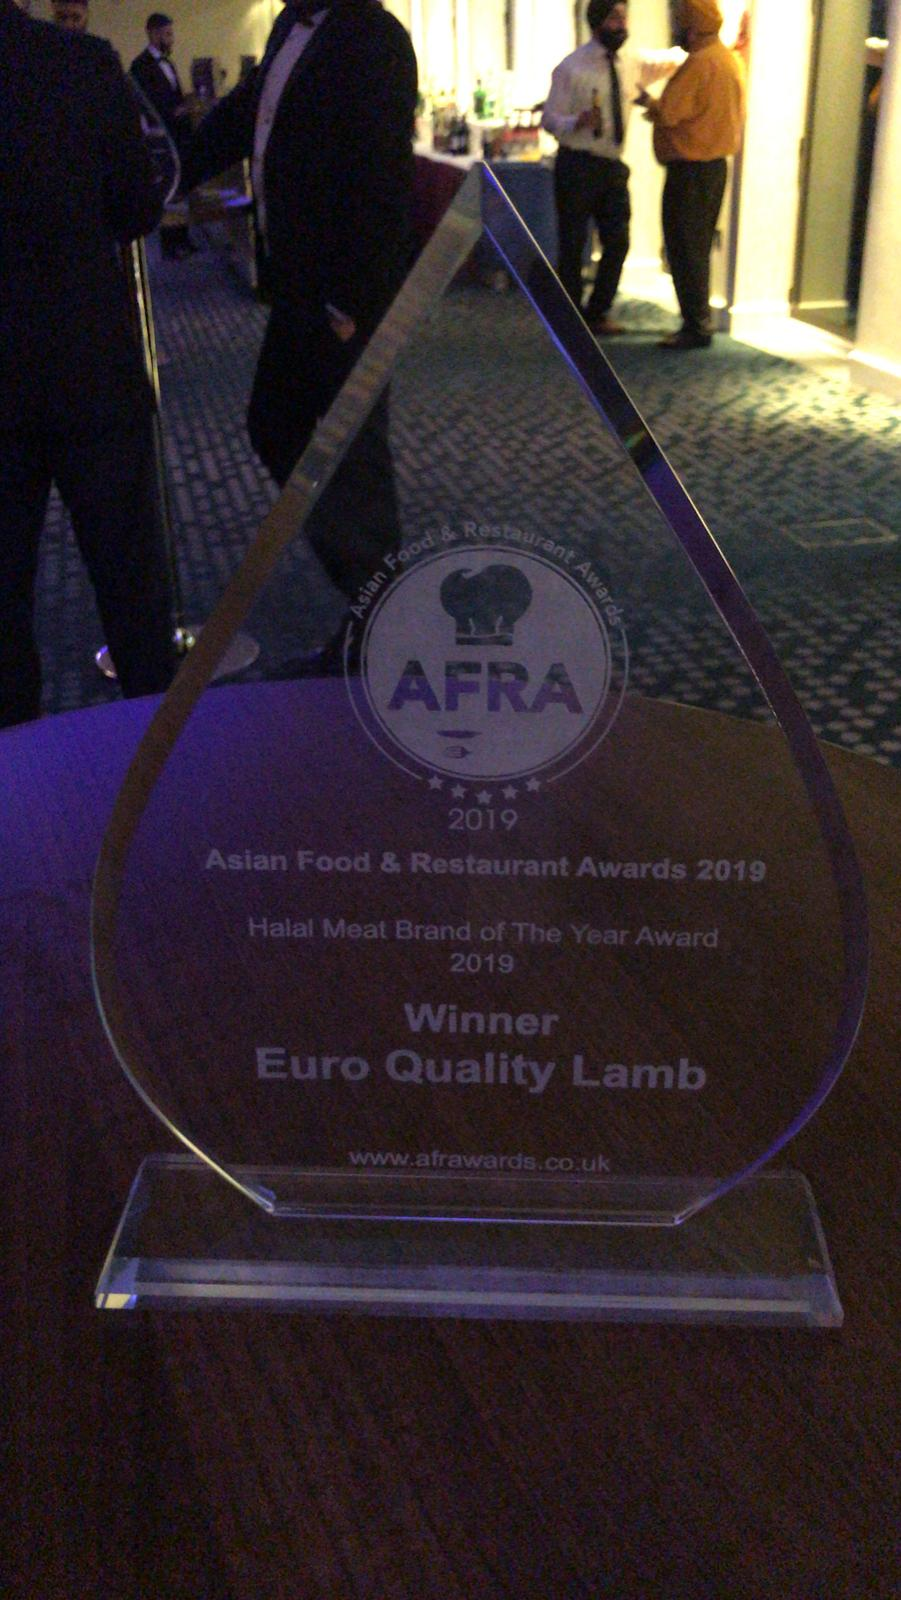 Euro Quality Lambs wins Asian Food Restaurant - Halal Meat Brand of the Year Award 2019 trophy